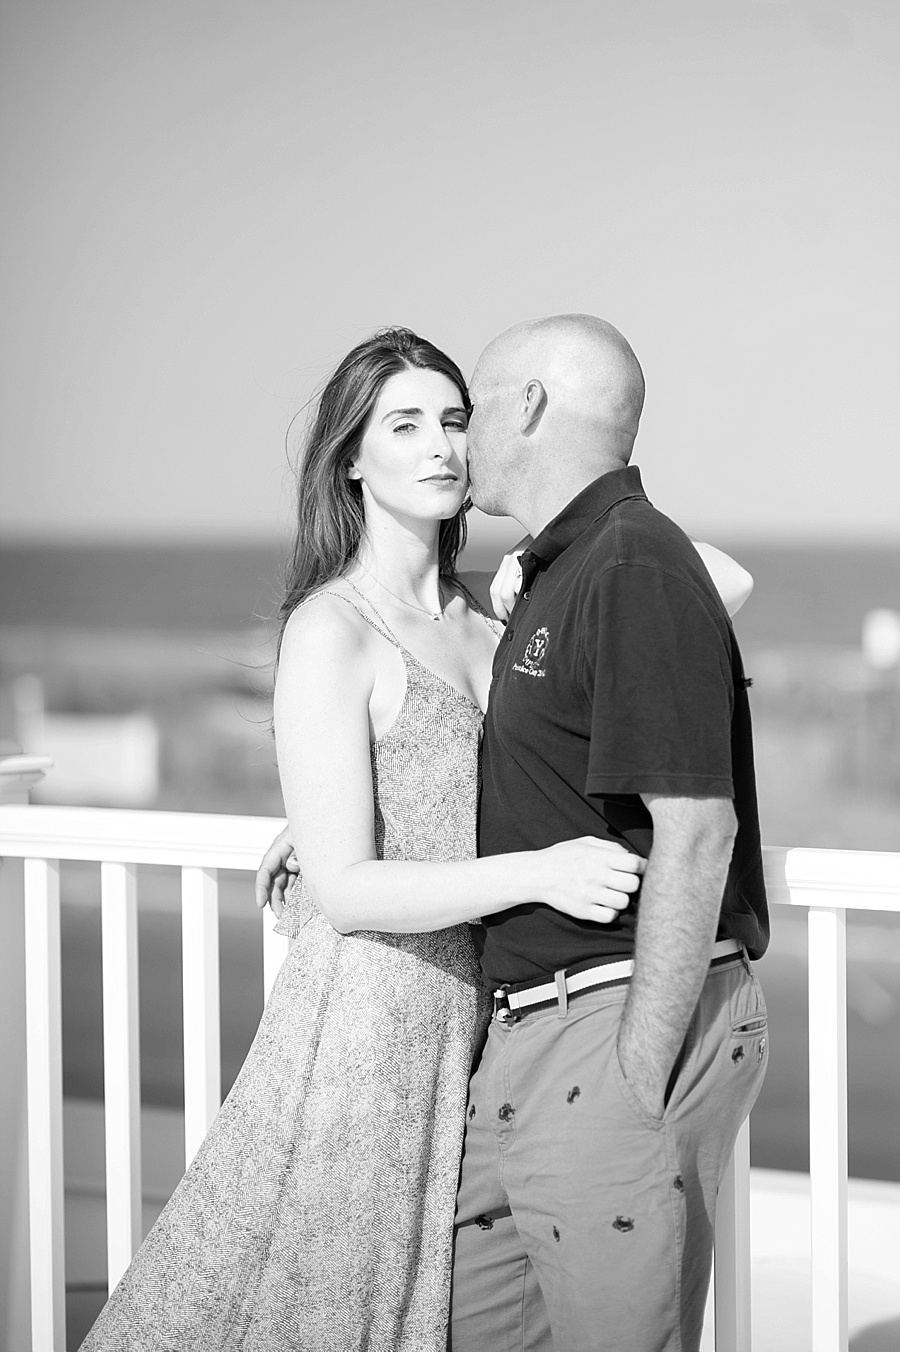 Spring_Lake_NJ_Engagement_Session_LB_009.jpg